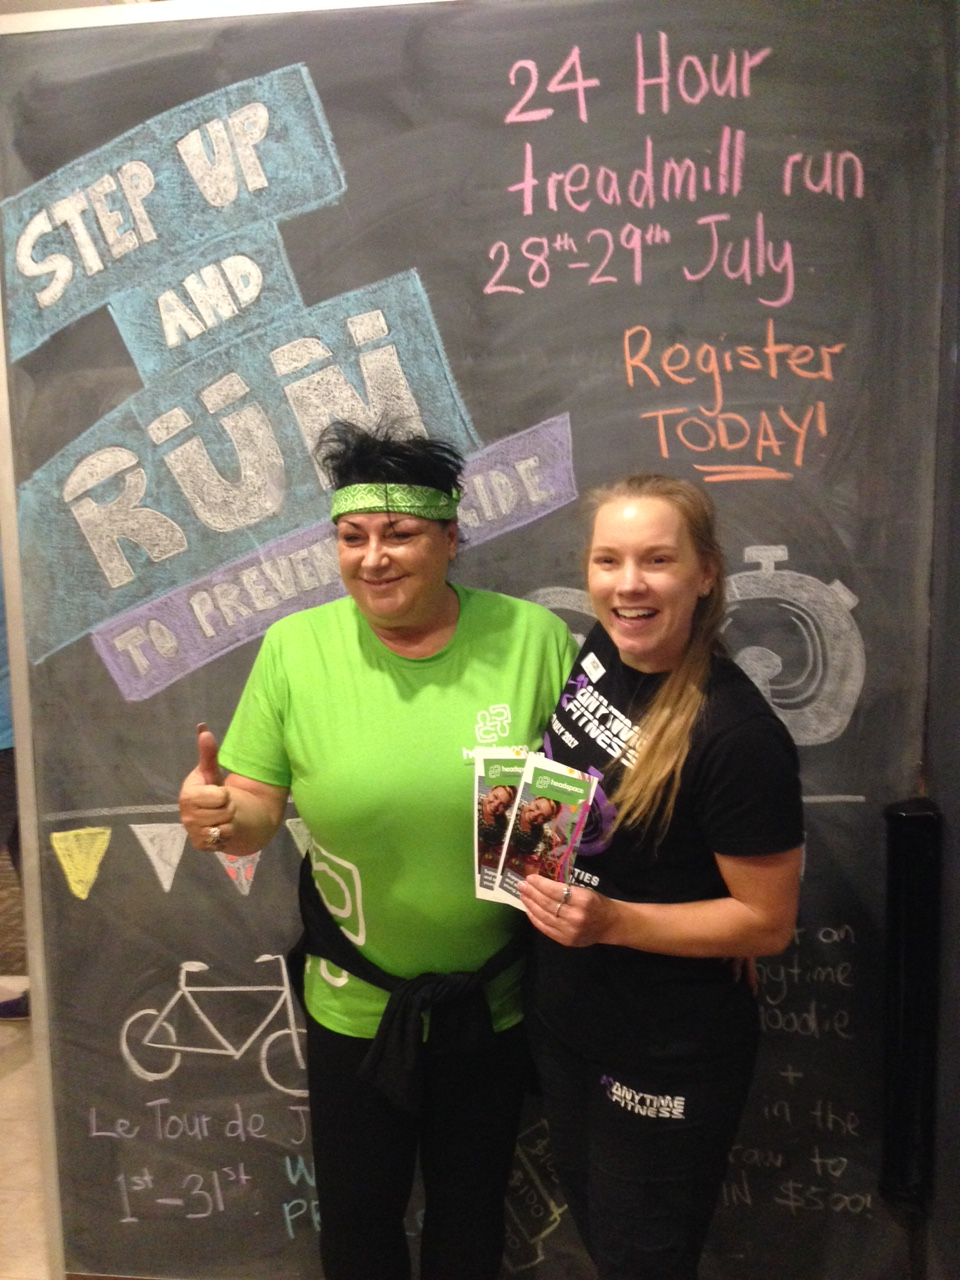 Tegan from Anytime Fitness and Vera from Head Space